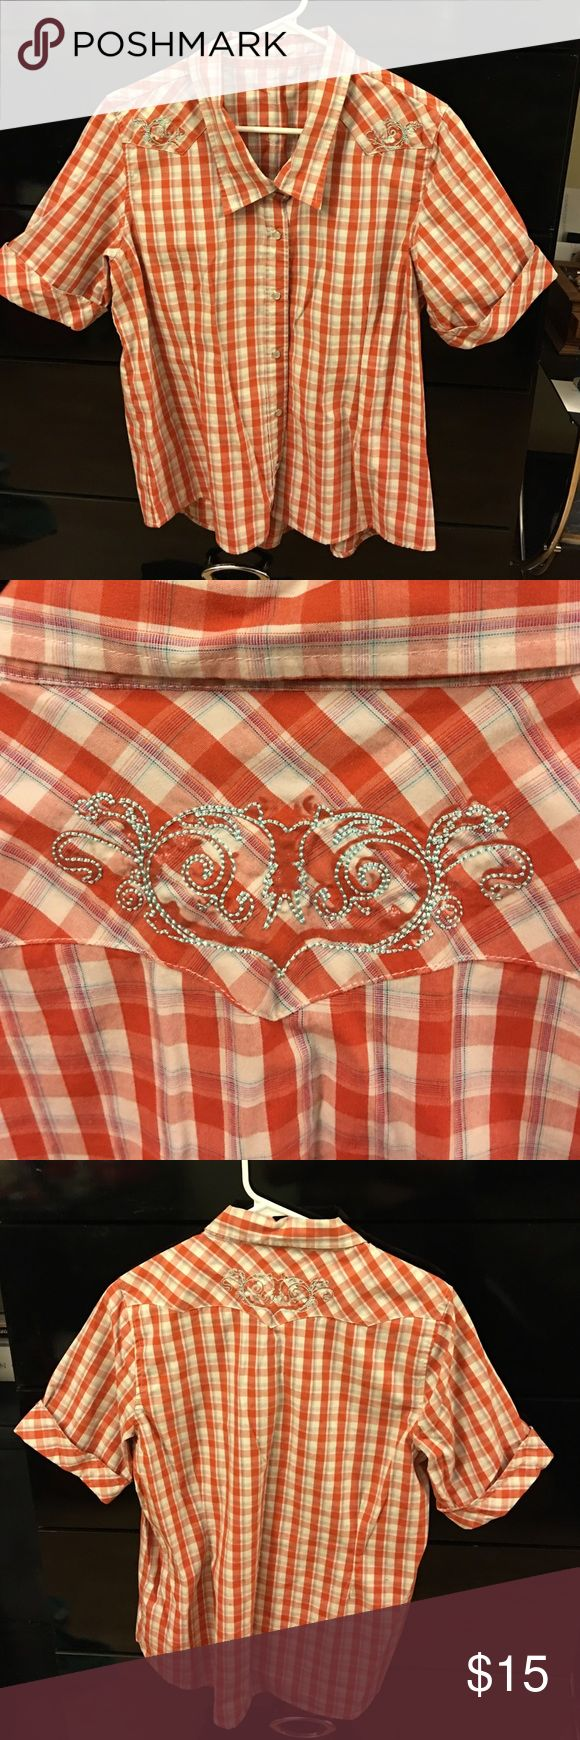 Bit and Bridle Plaid Cowgirl Shirt I have s size large orange and white Plaid cowgirl shirt with snap closure. Has light blue embroidery on shoulders and the back. Bit & Bridle  Tops Button Down Shirts